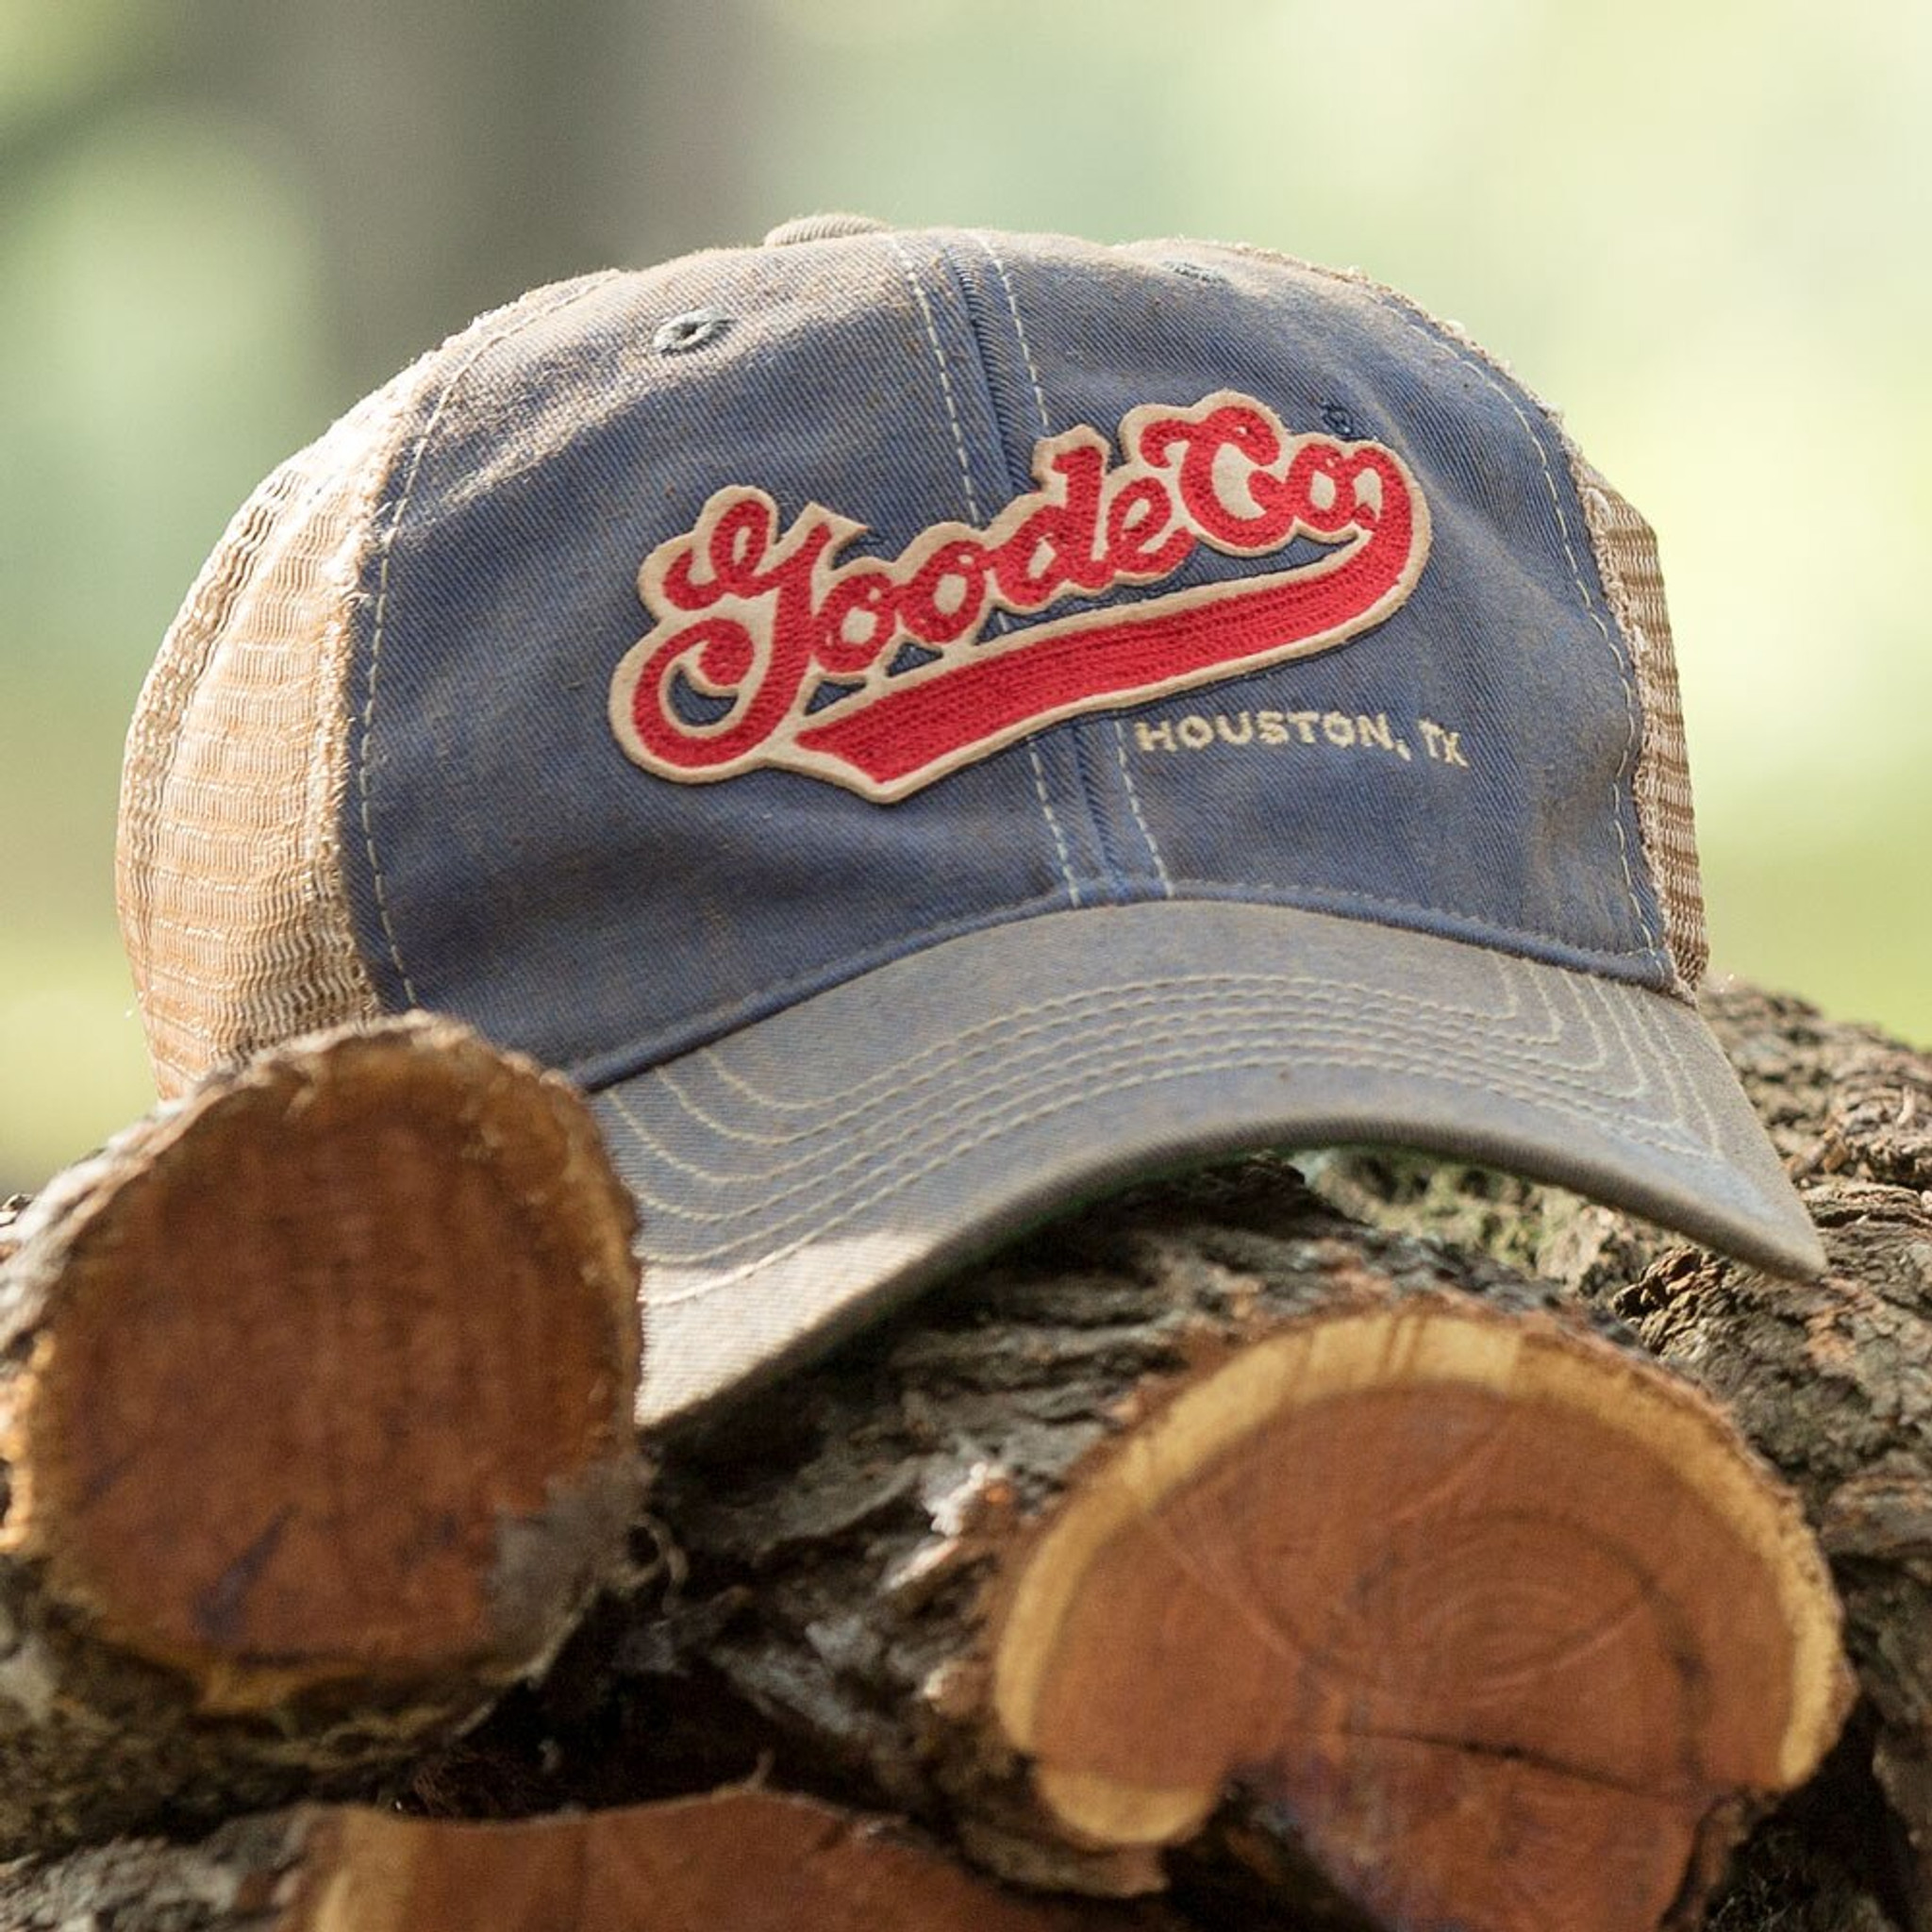 Goode Co's vintage-looking blue trucker hat resting on Texas mesquite wood.